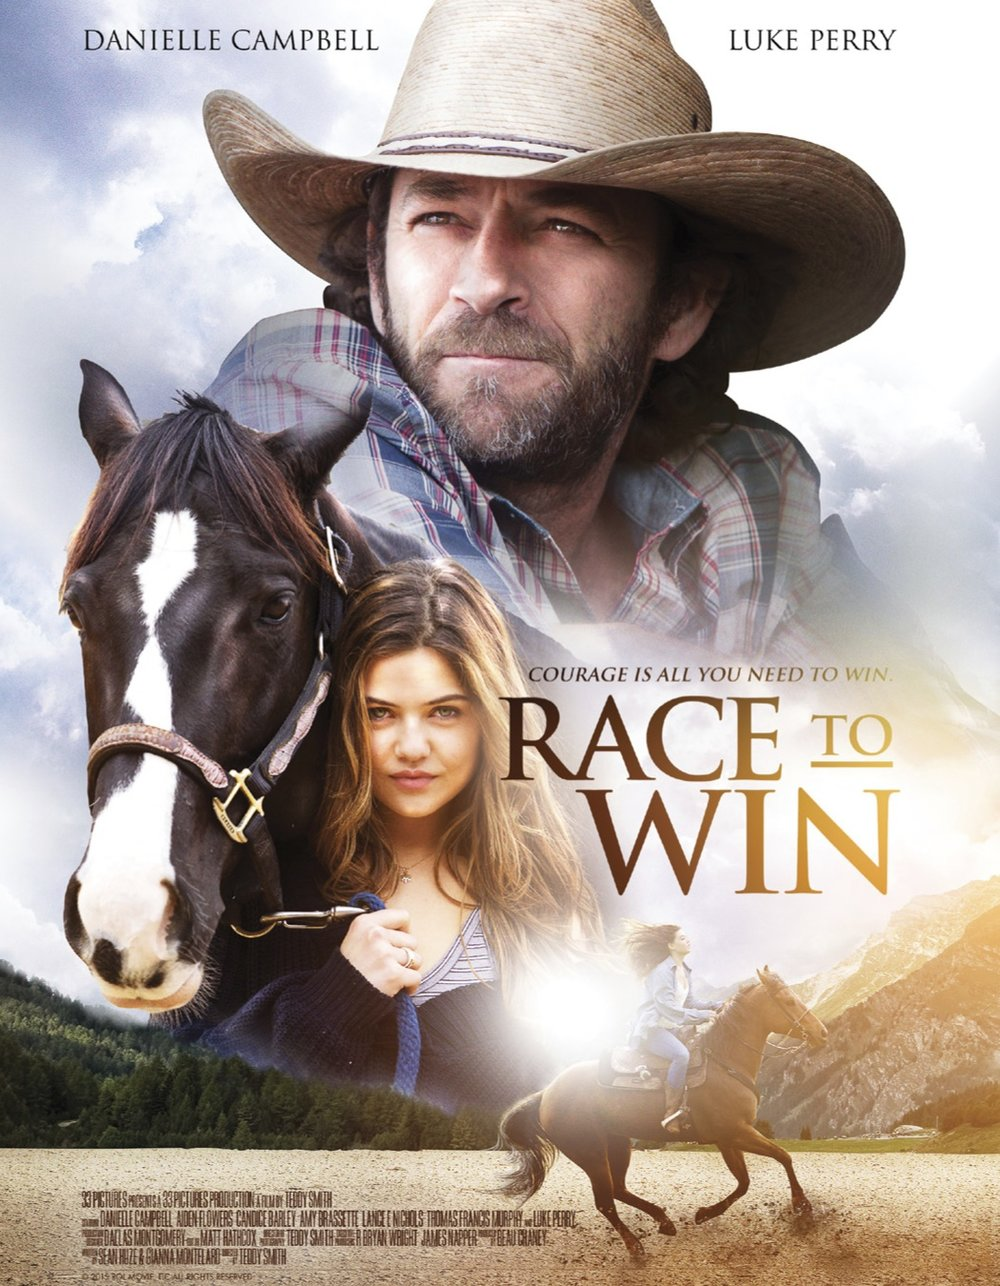 Race-to-Win-Movie-Poster.jpg